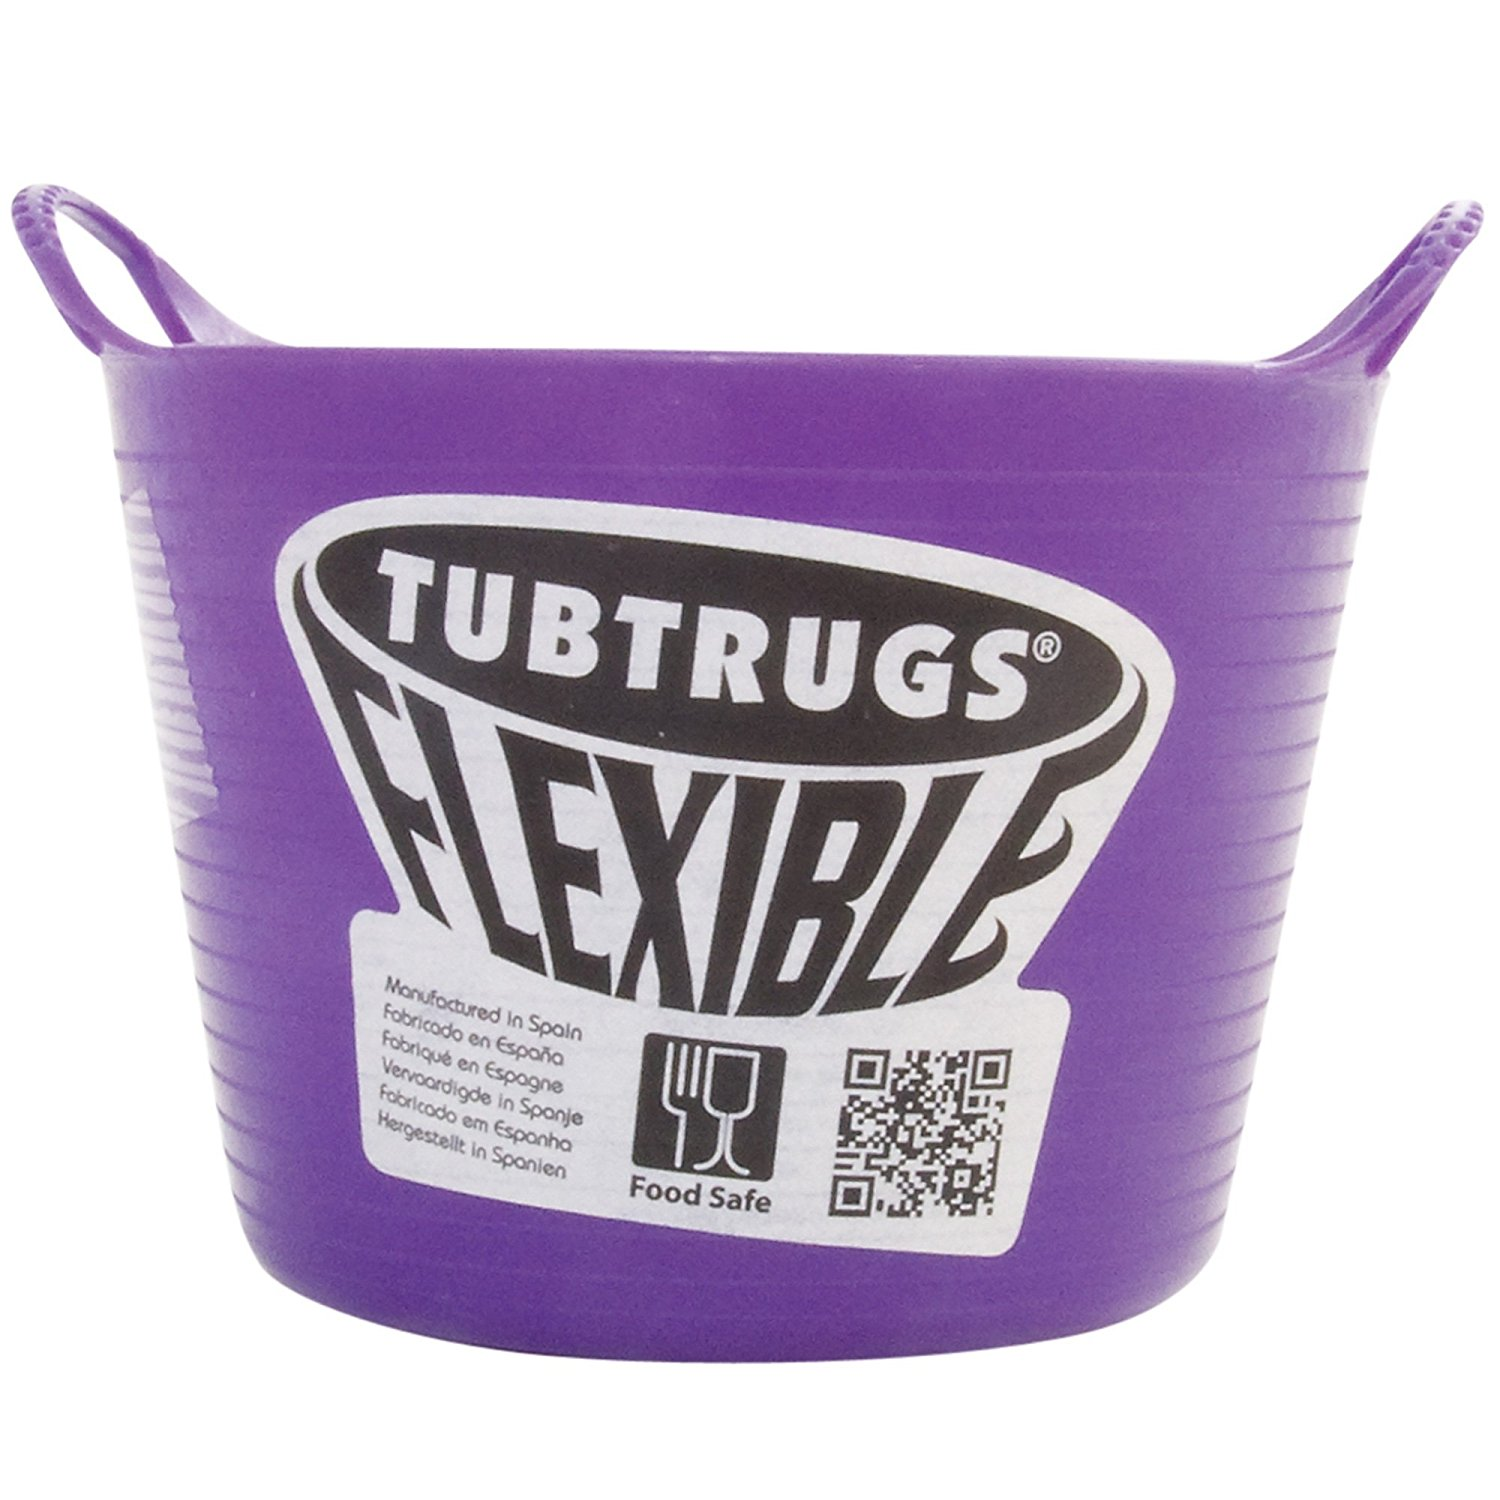 Tubtrugs SPMICP Flexible Purple Micro .37 Liter/12.5 Ounce Capacity